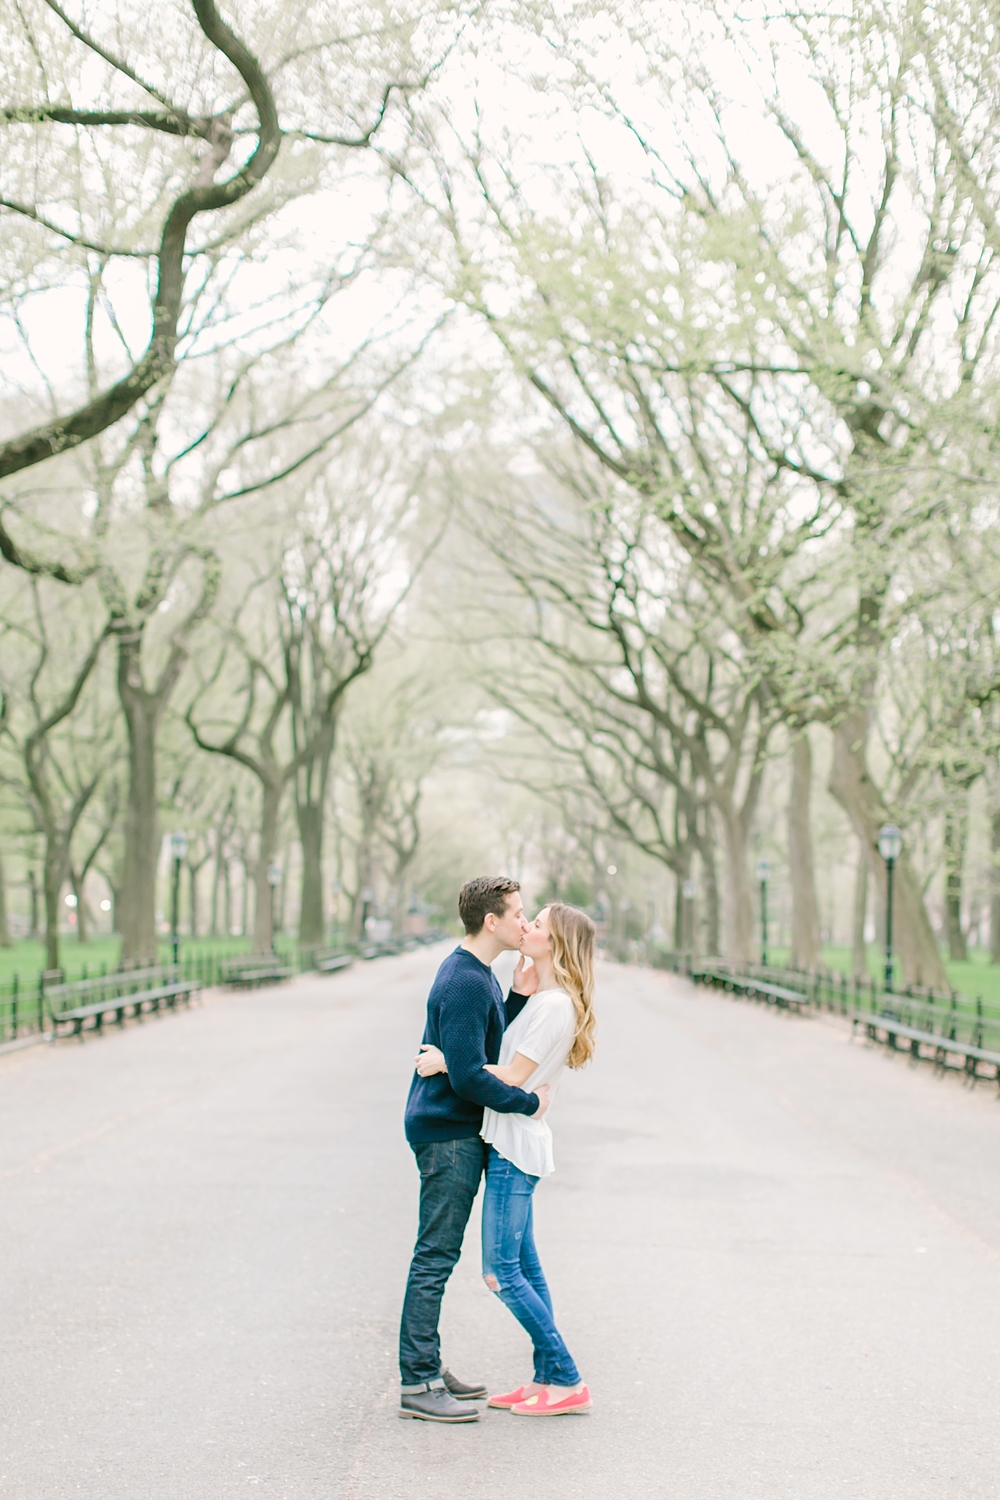 central_park_engagement_spring_photo_0005.jpg